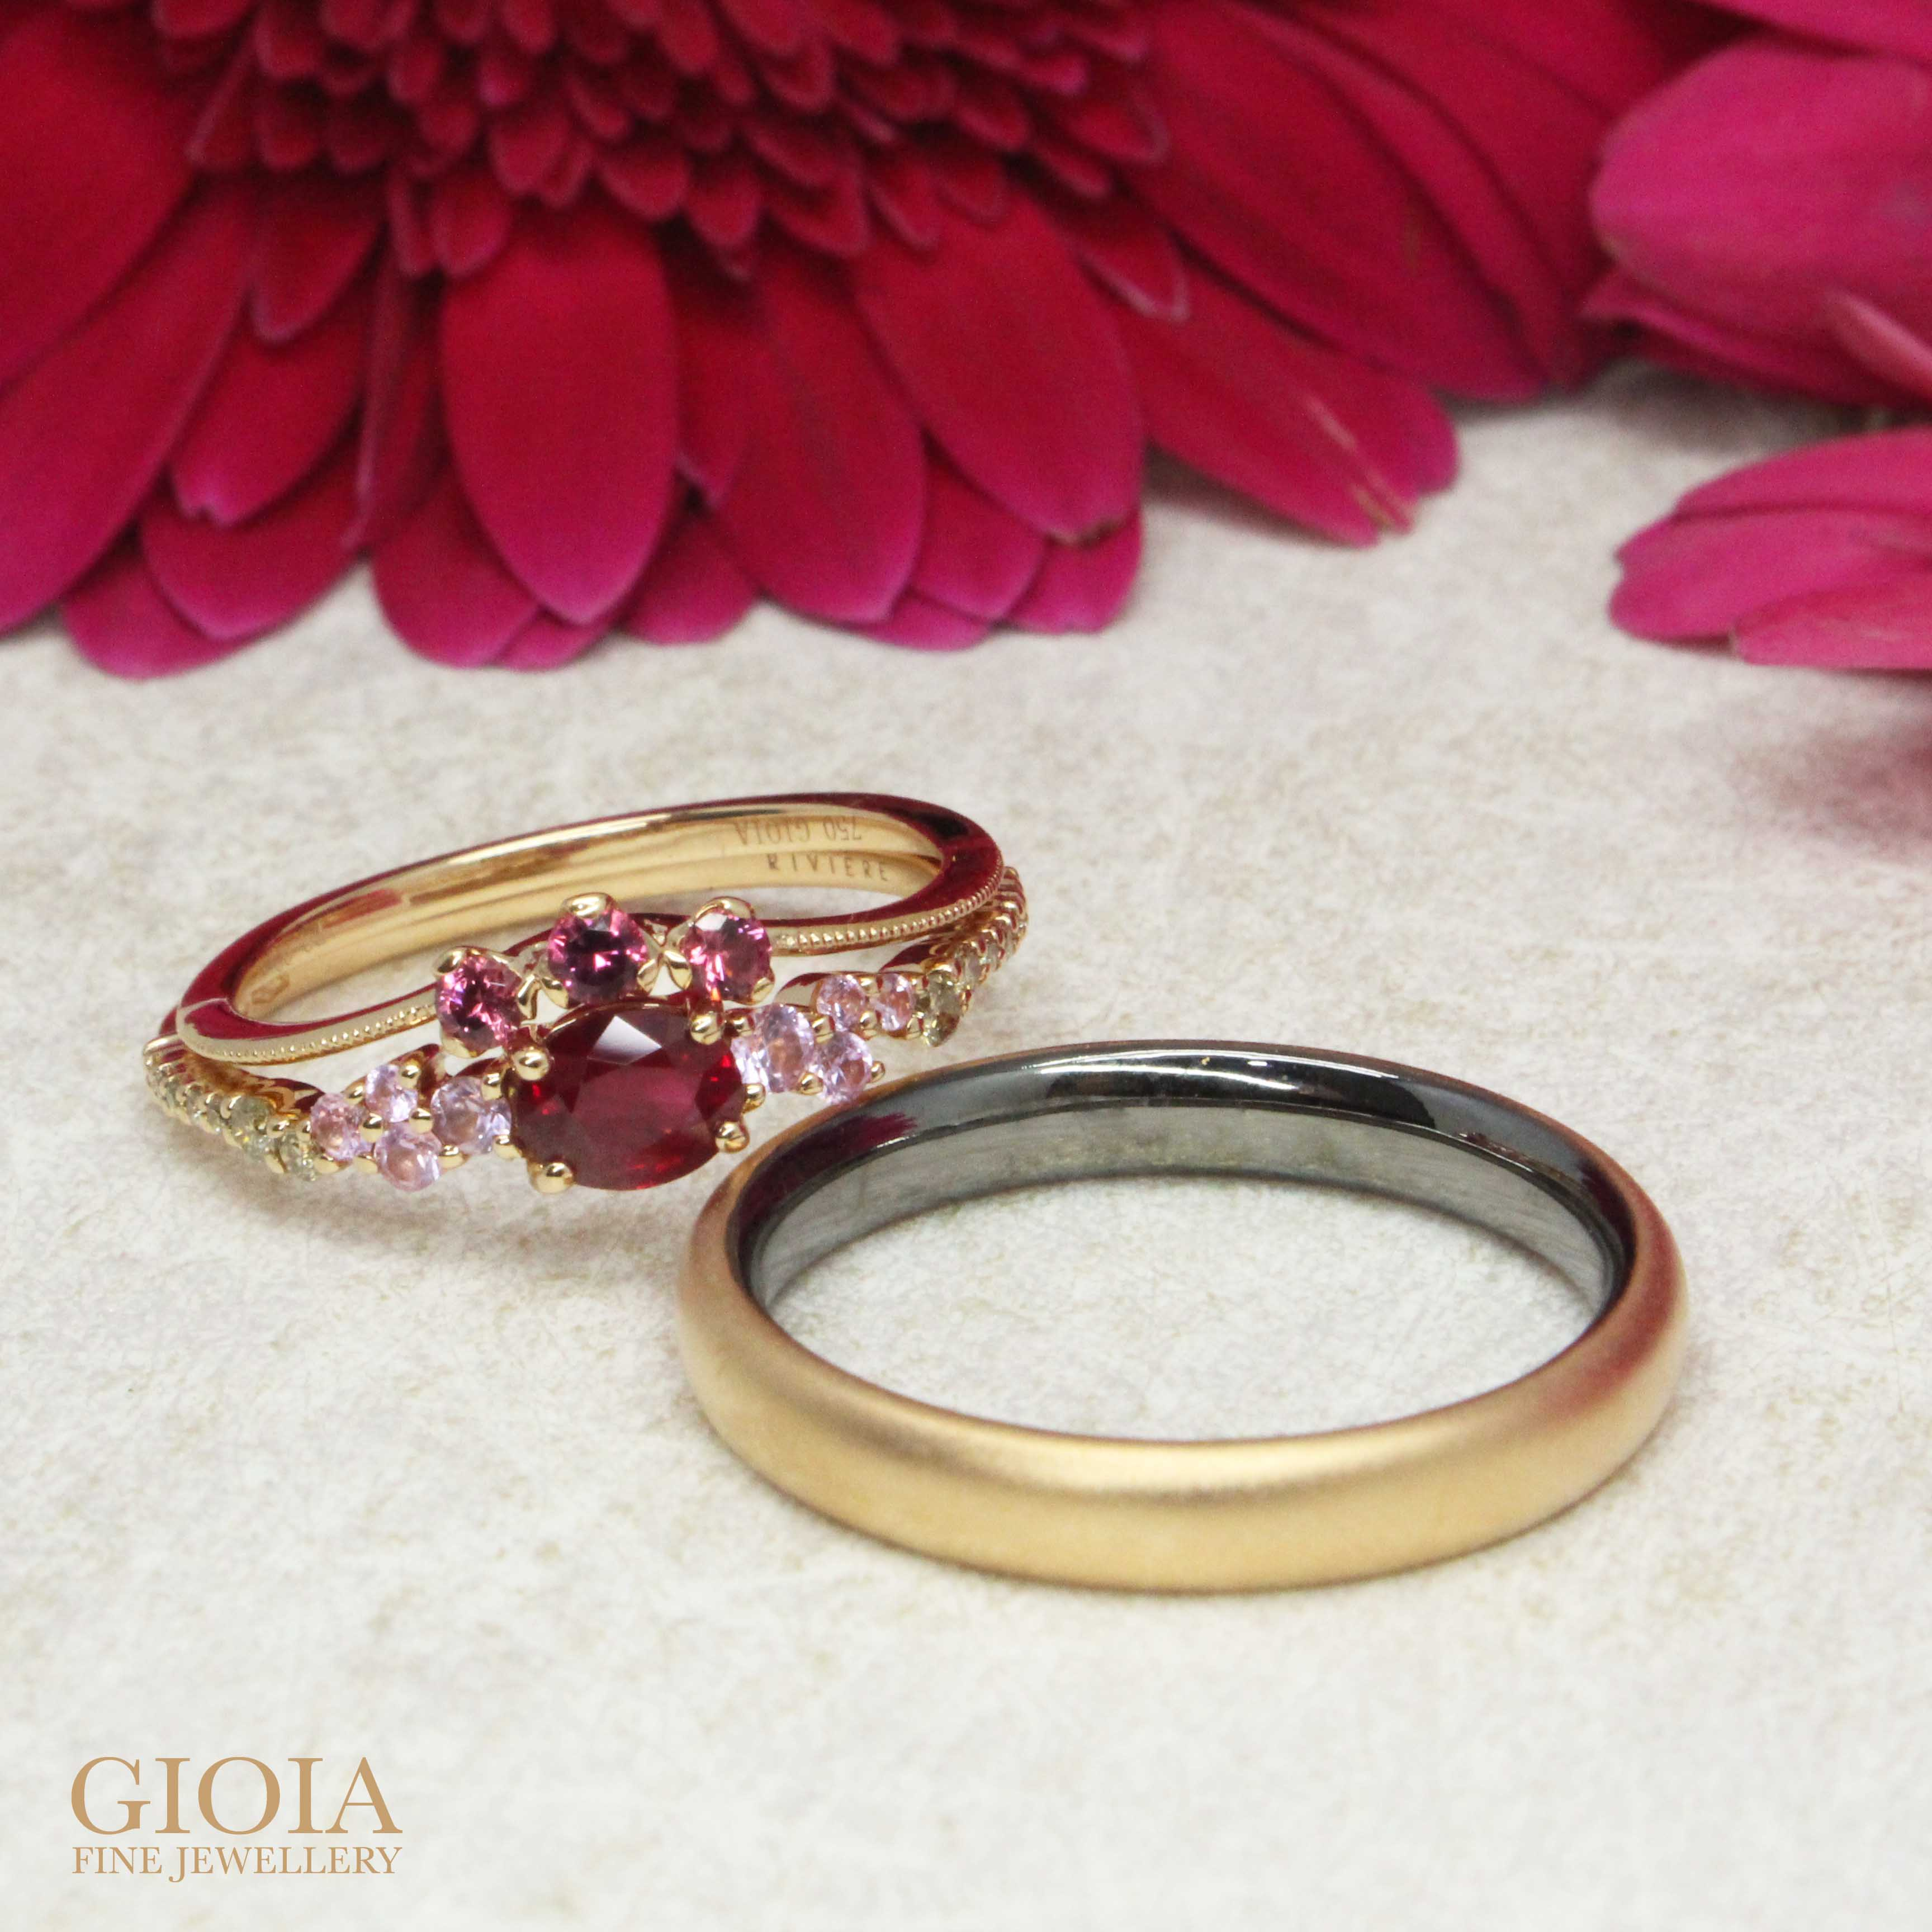 Customised Coloured Gemstone Ruby & Spinel Engagement Rings stacking with Wedding Bands, custom made in 18k rose gold - Singapore Private Jeweller in customised fine jewellery